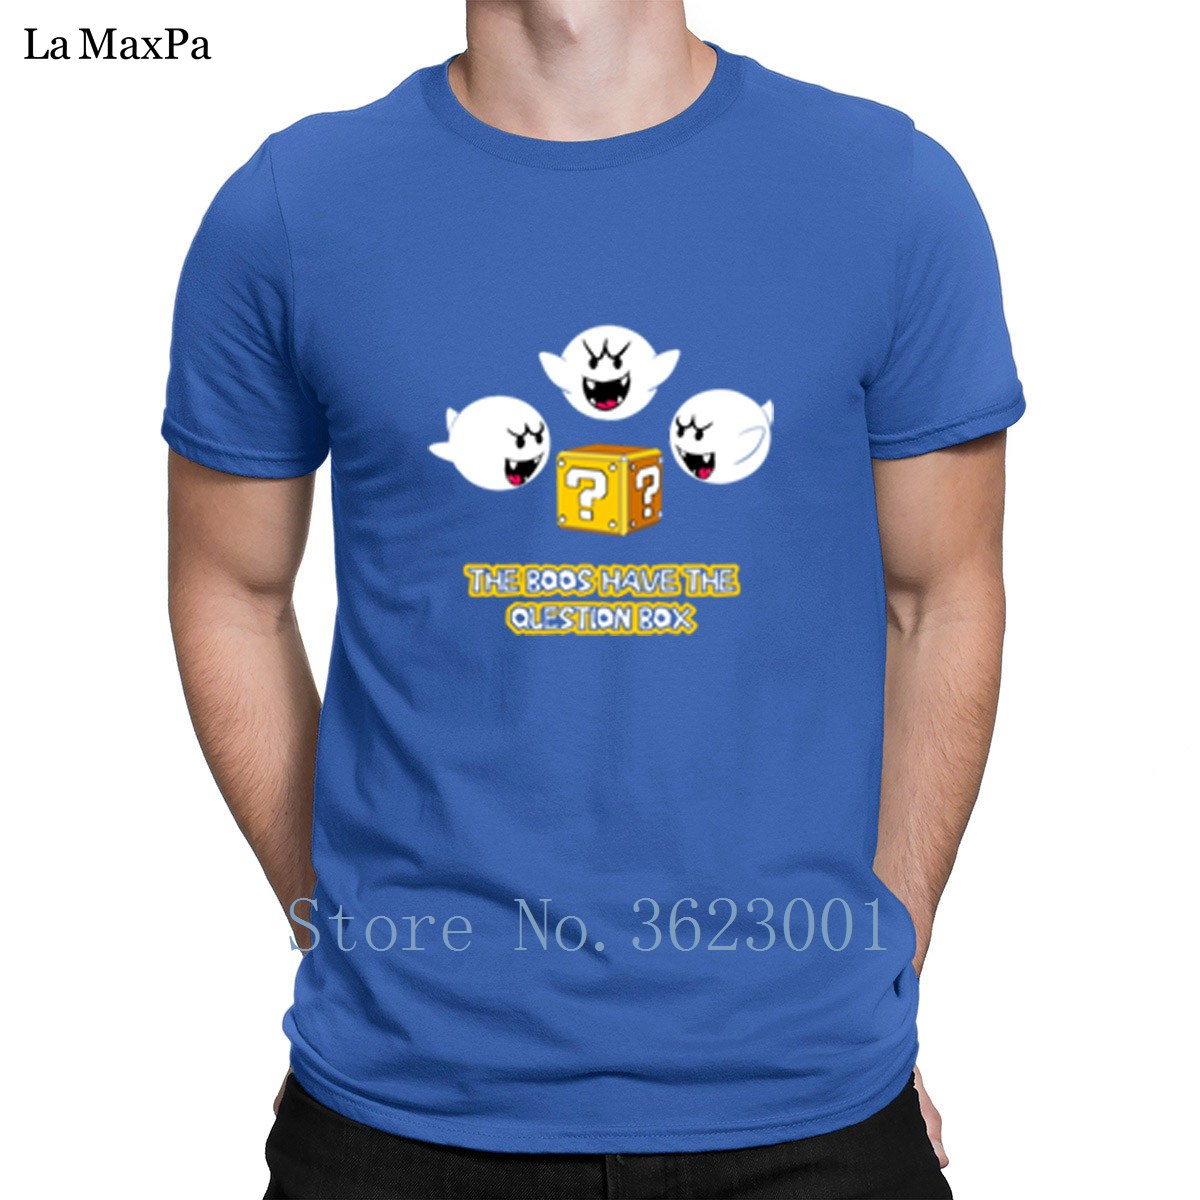 Customize Original Tshirt The Boos Have The Question Box T-Shirt Man Size S-3xl Hiphop T Shirt Humor Mens Tee Shirt Gents Fitted